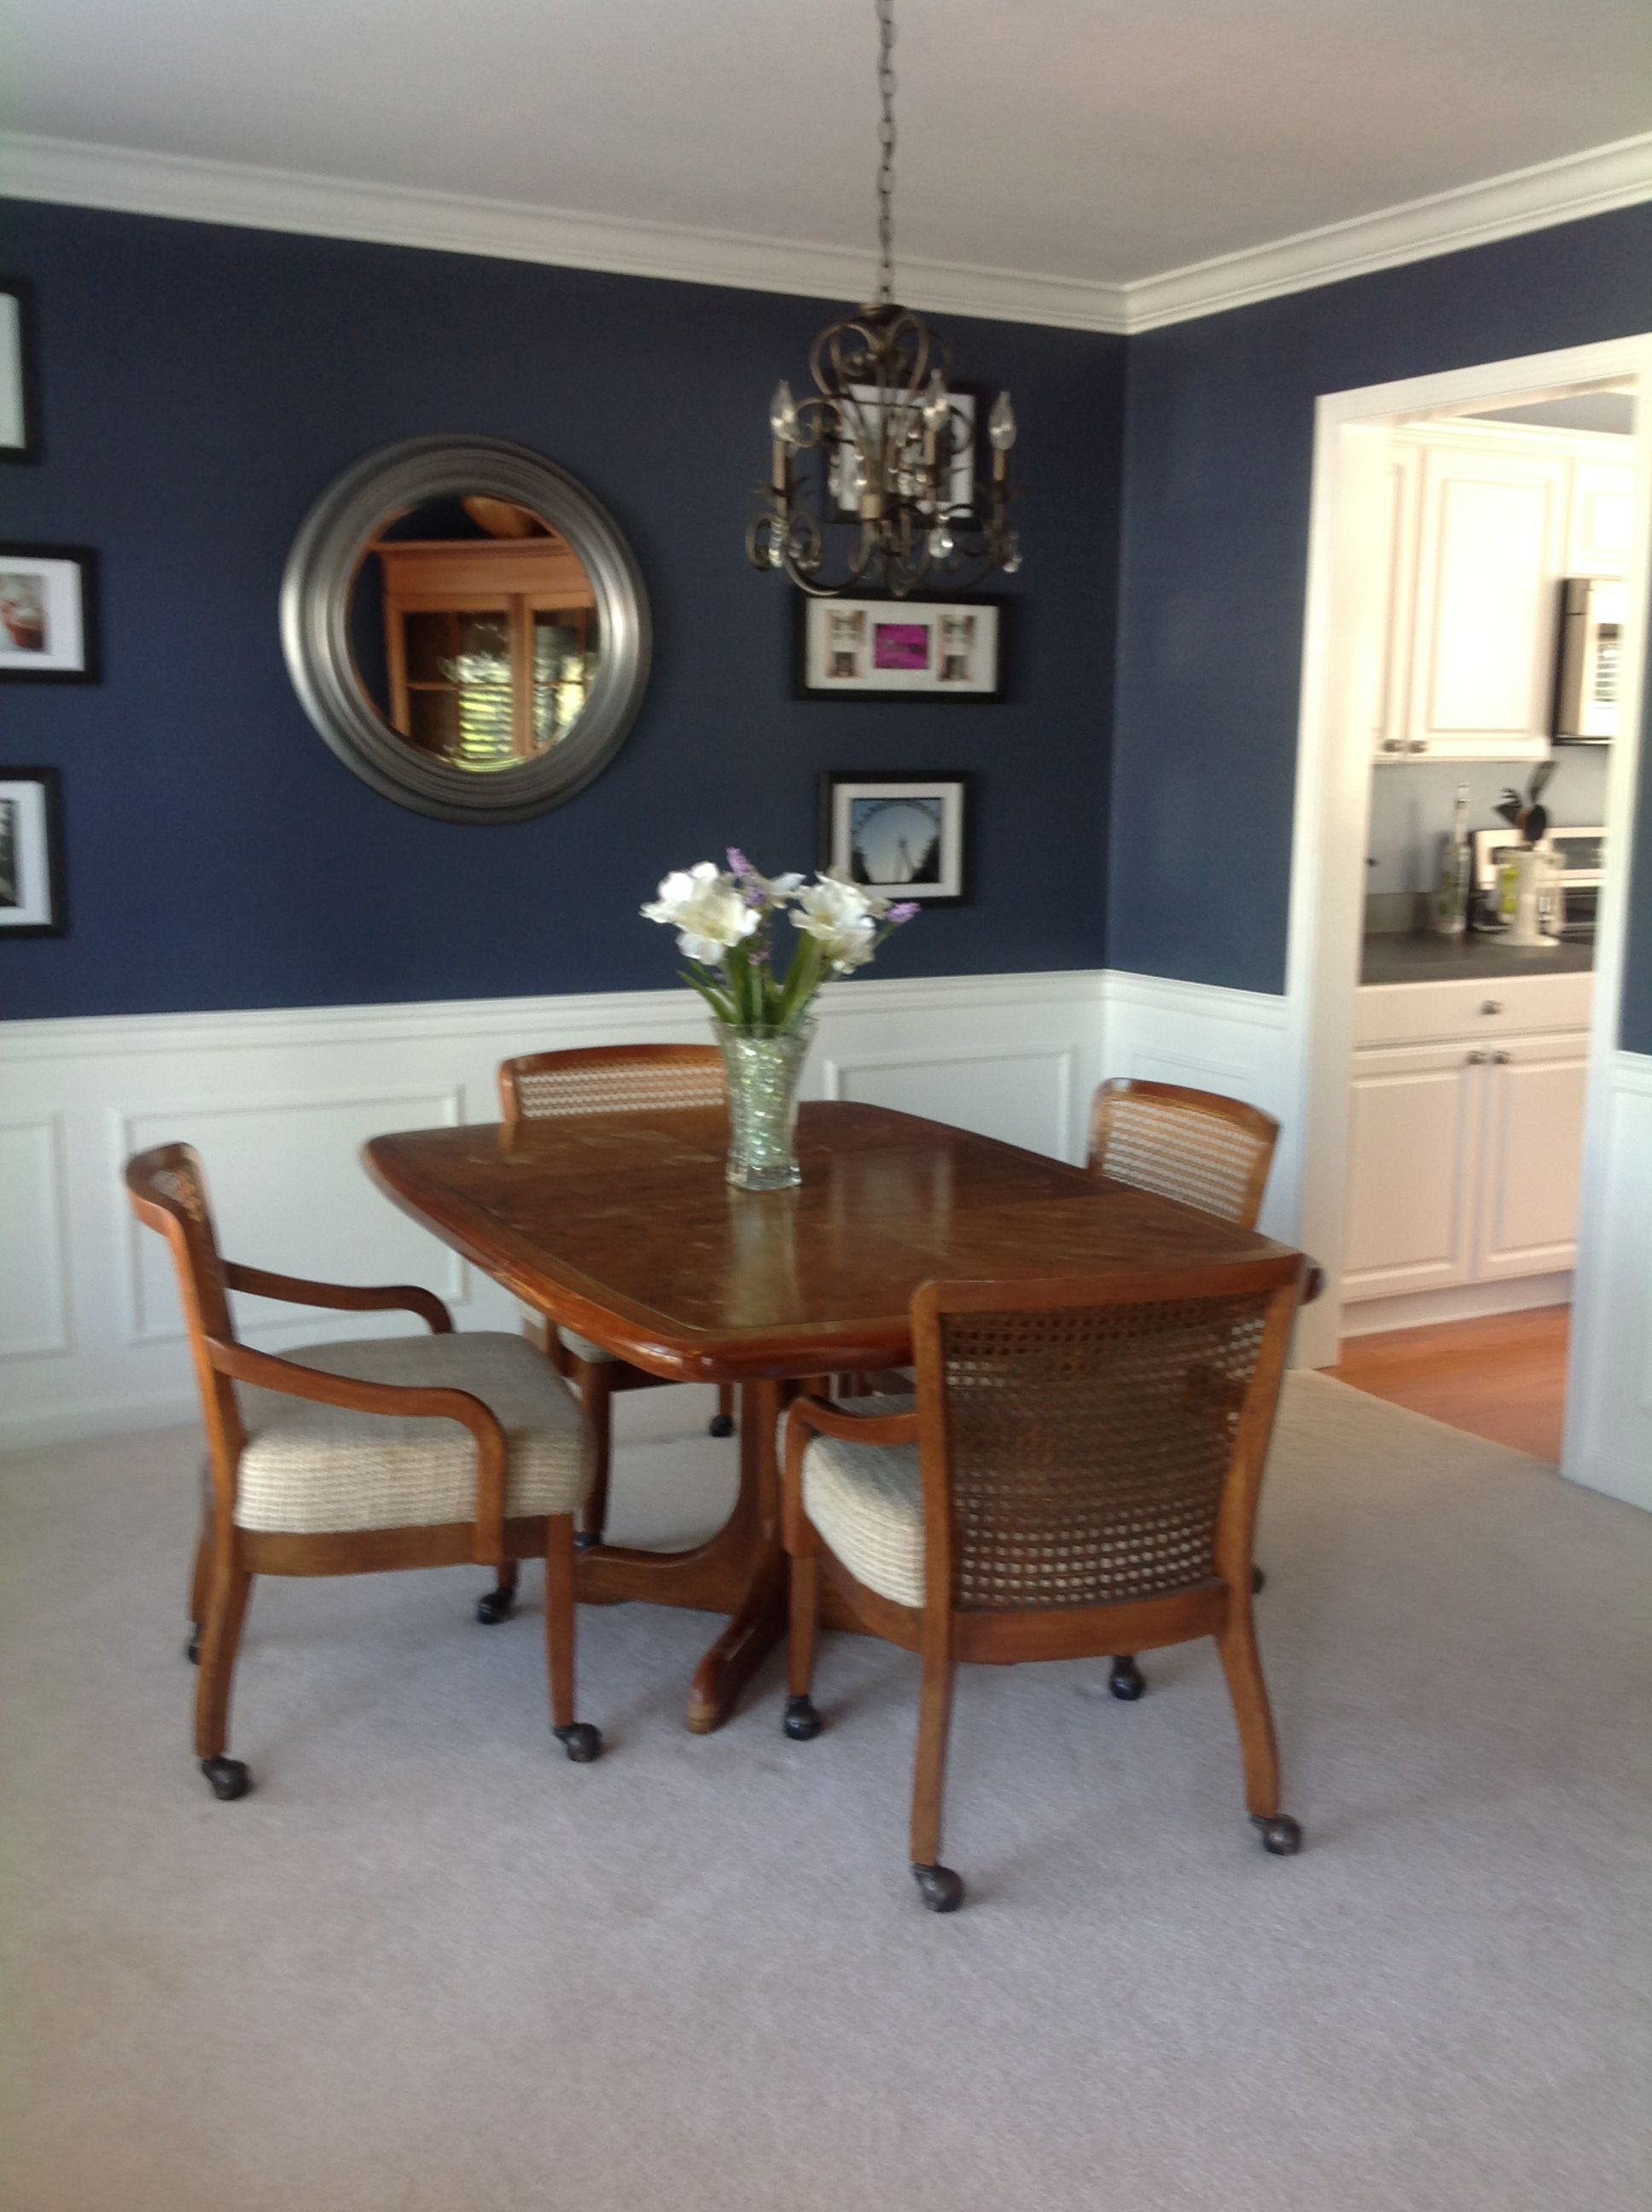 Pin By Ashley Clem On For The Home Dining Room Colors Dining Room Paint Colors Dining Room Colour Schemes